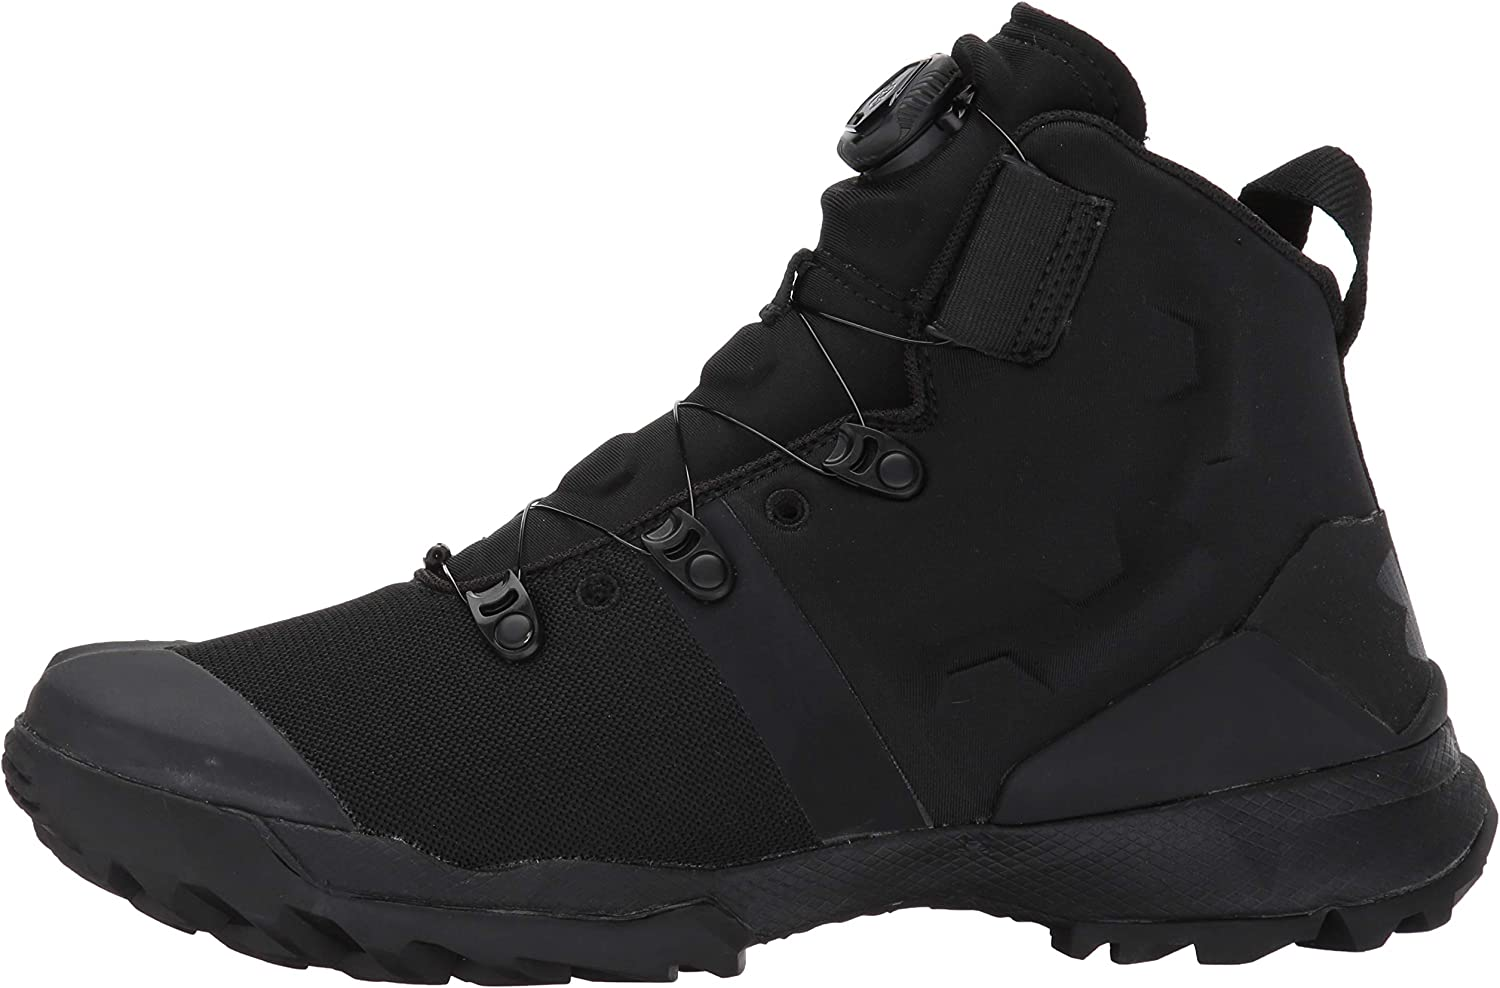 Under Armour Men's Infil Military and Tactical Boot: Shoes